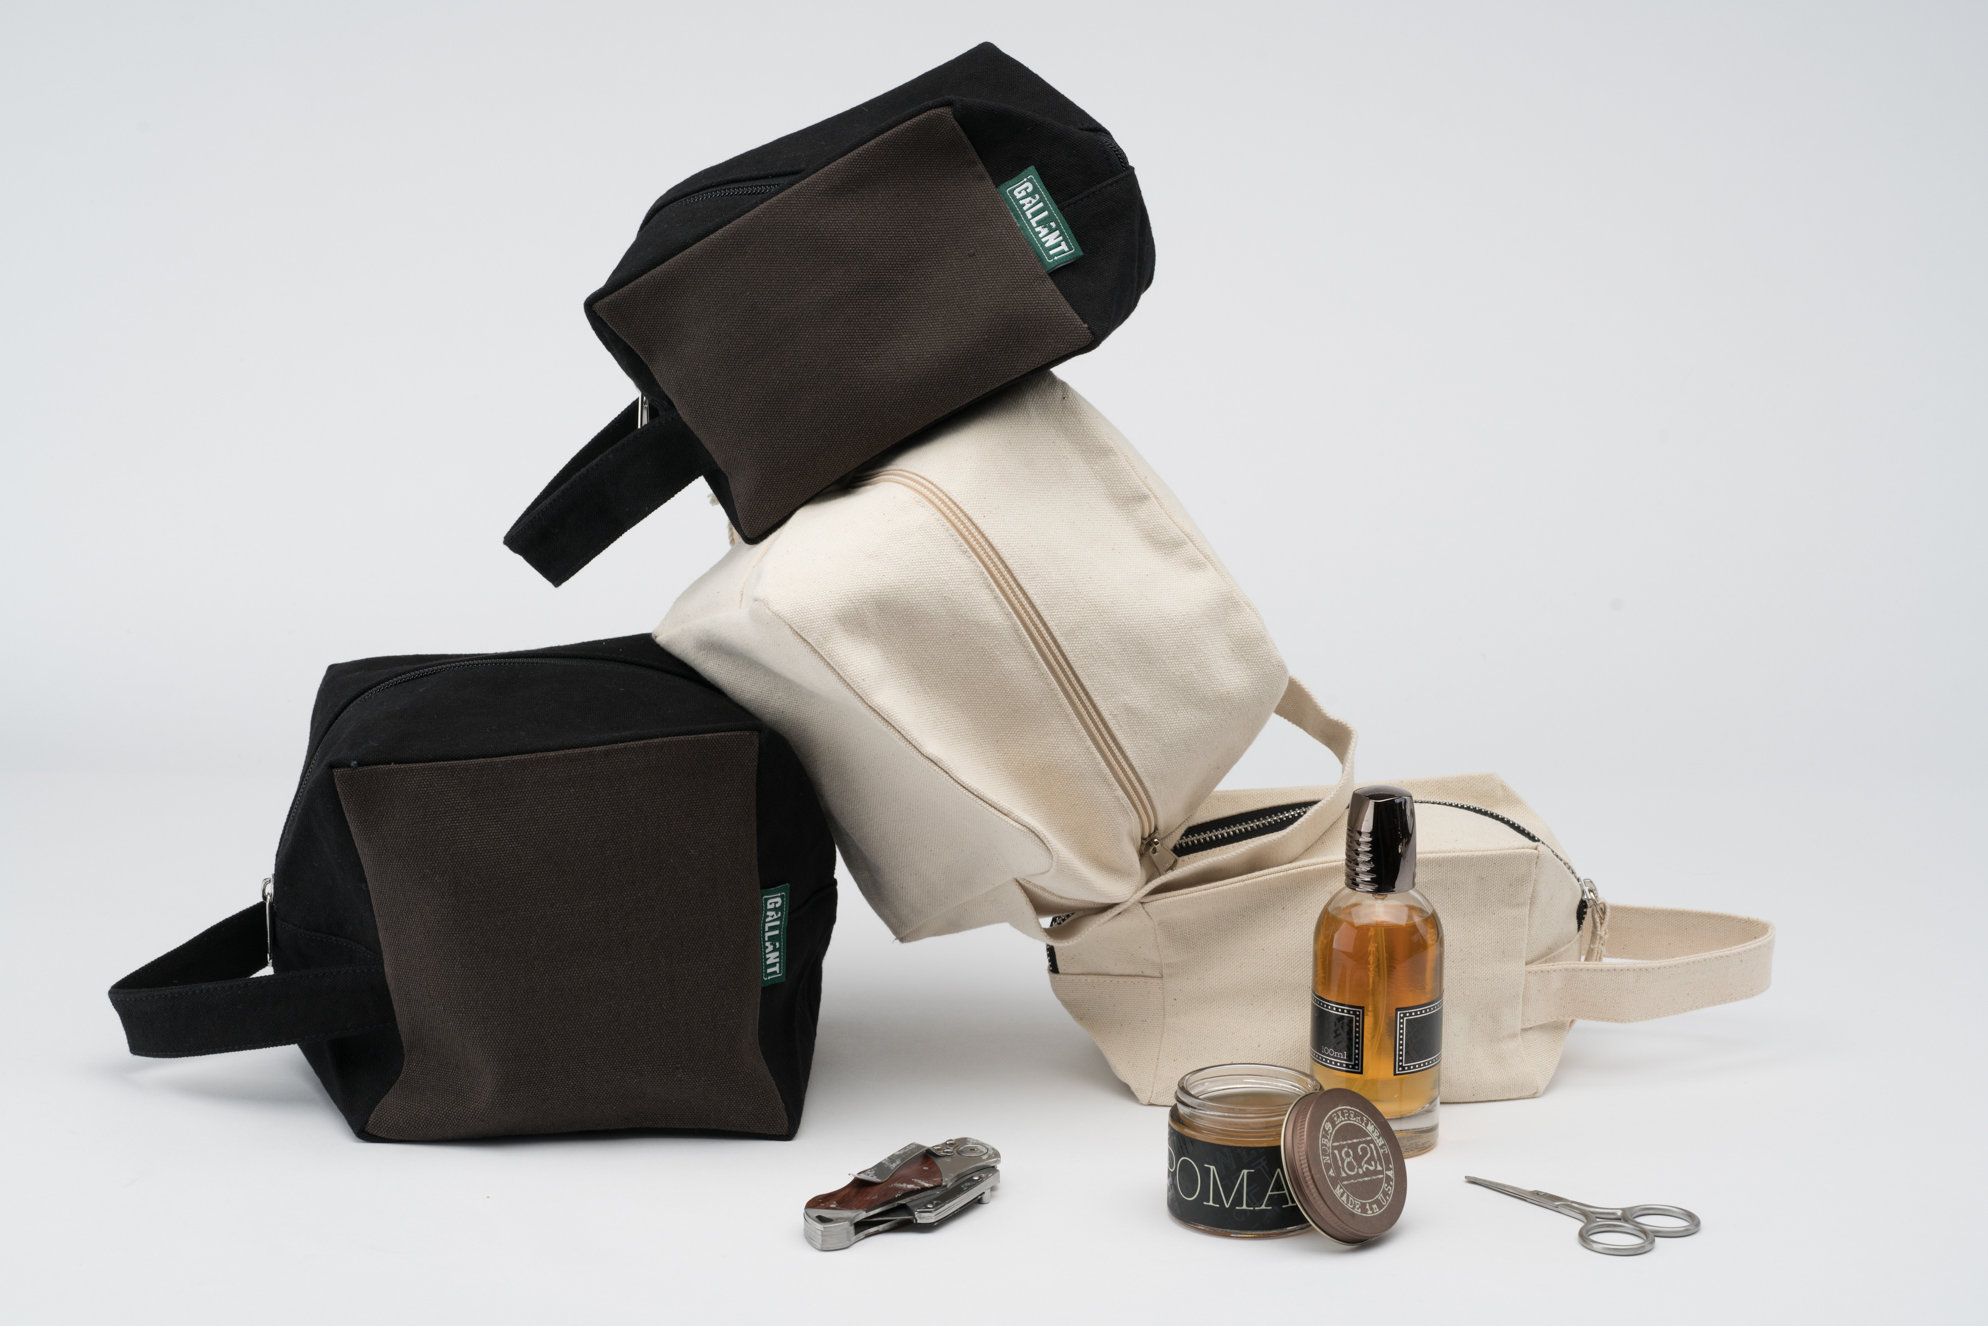 Our toiletry bags/zipper pouches are customizable to size, shape, color and more!